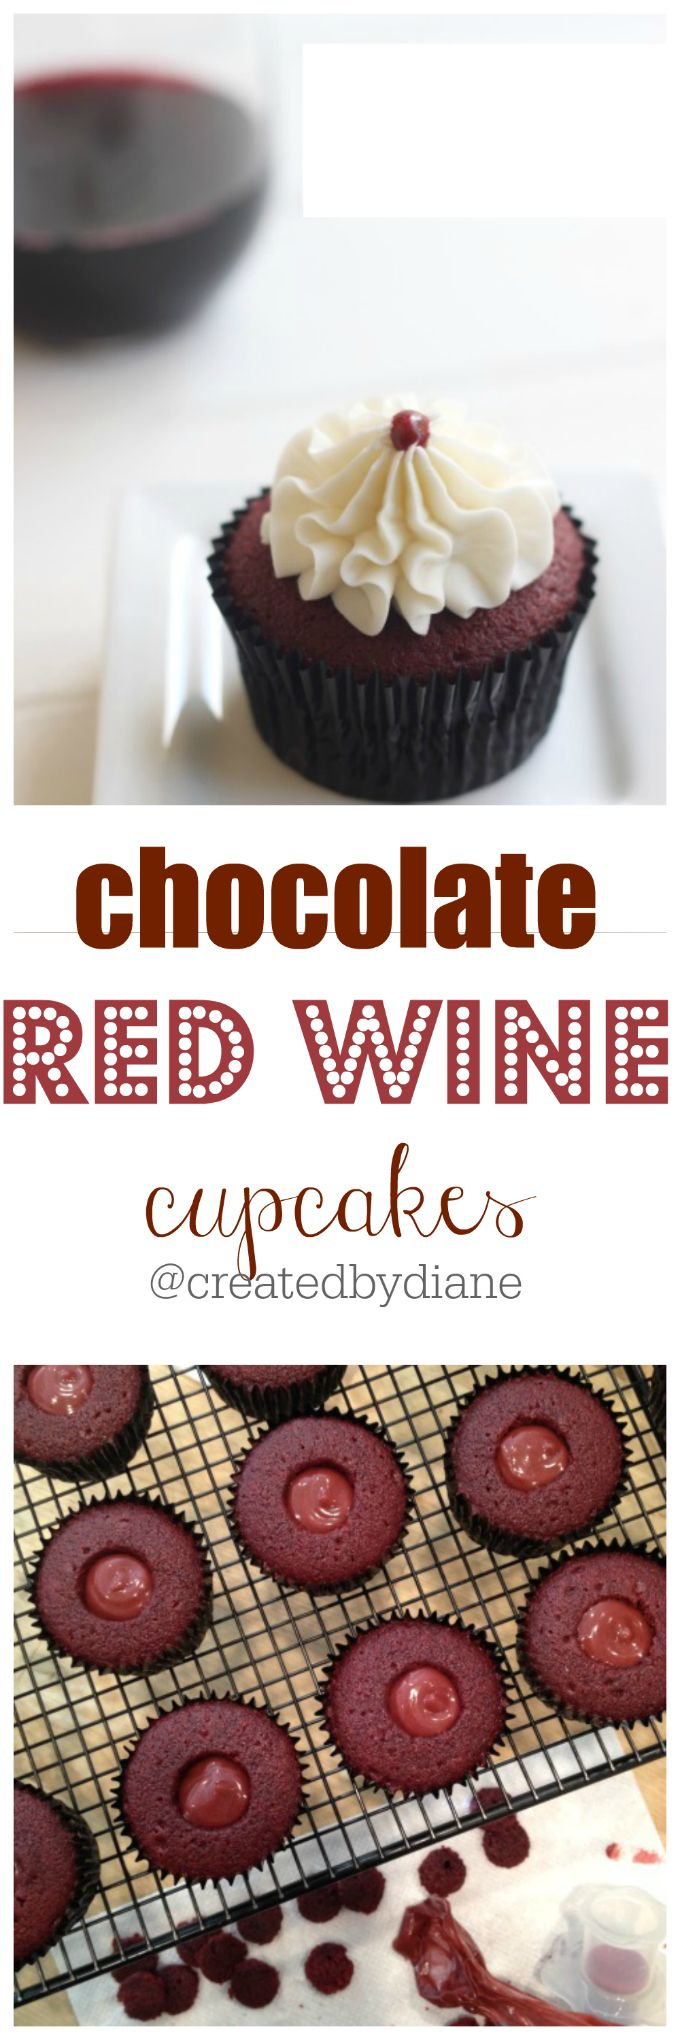 chocolate red wine cupcakes @createdbydiane